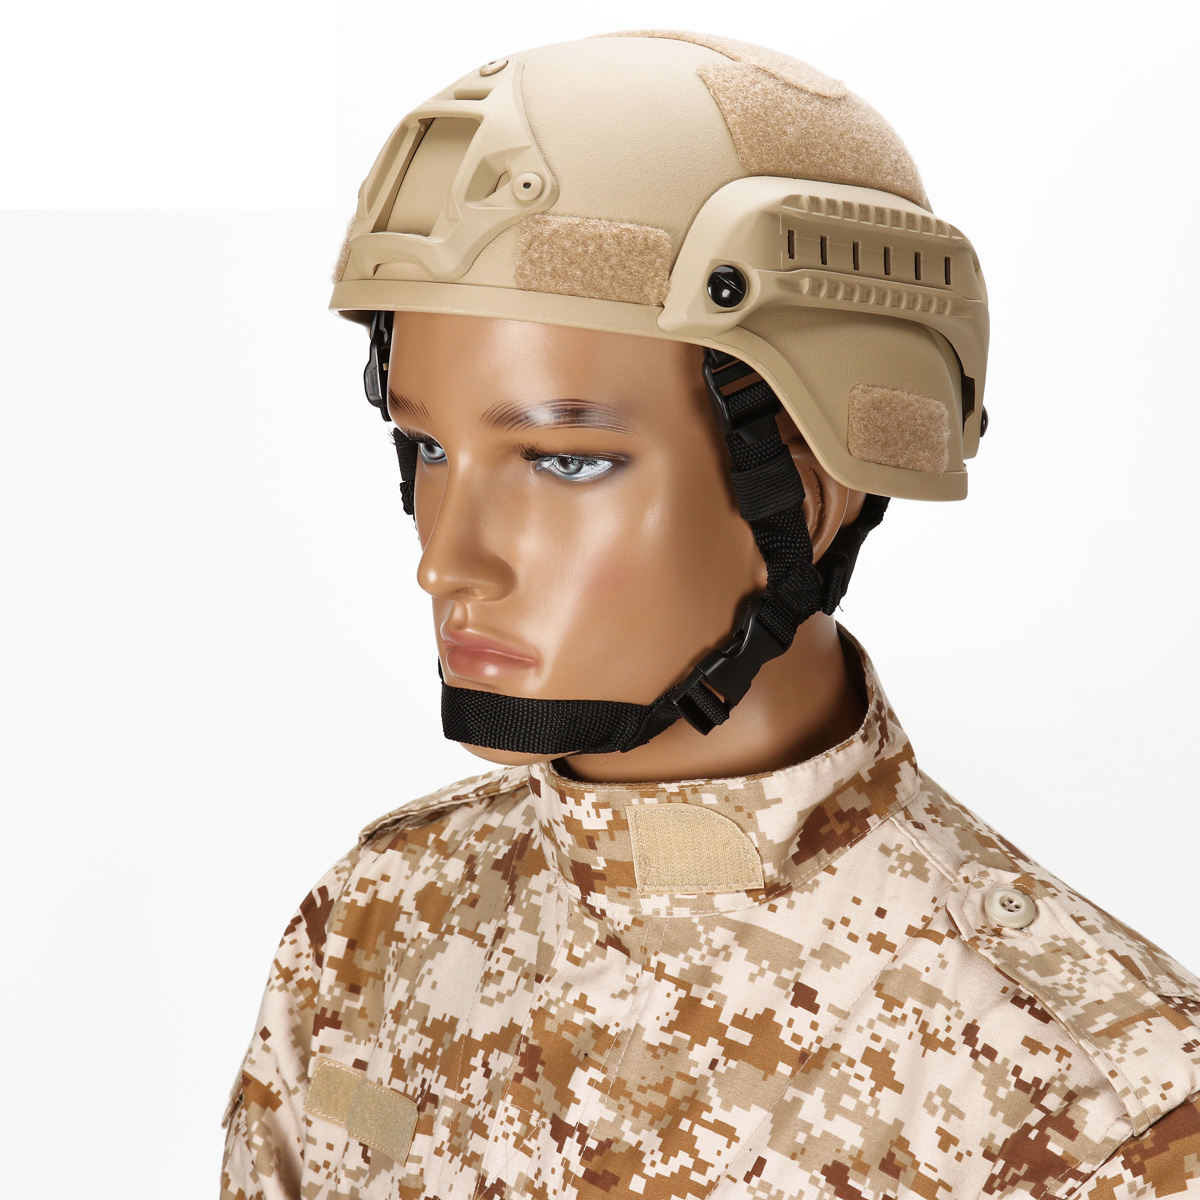 Outdoor Cycling Gear Airsoft Tactical War Game Mich 2000 ABS Helmet Military Action Type Combat Helmets Paintball Head Protector